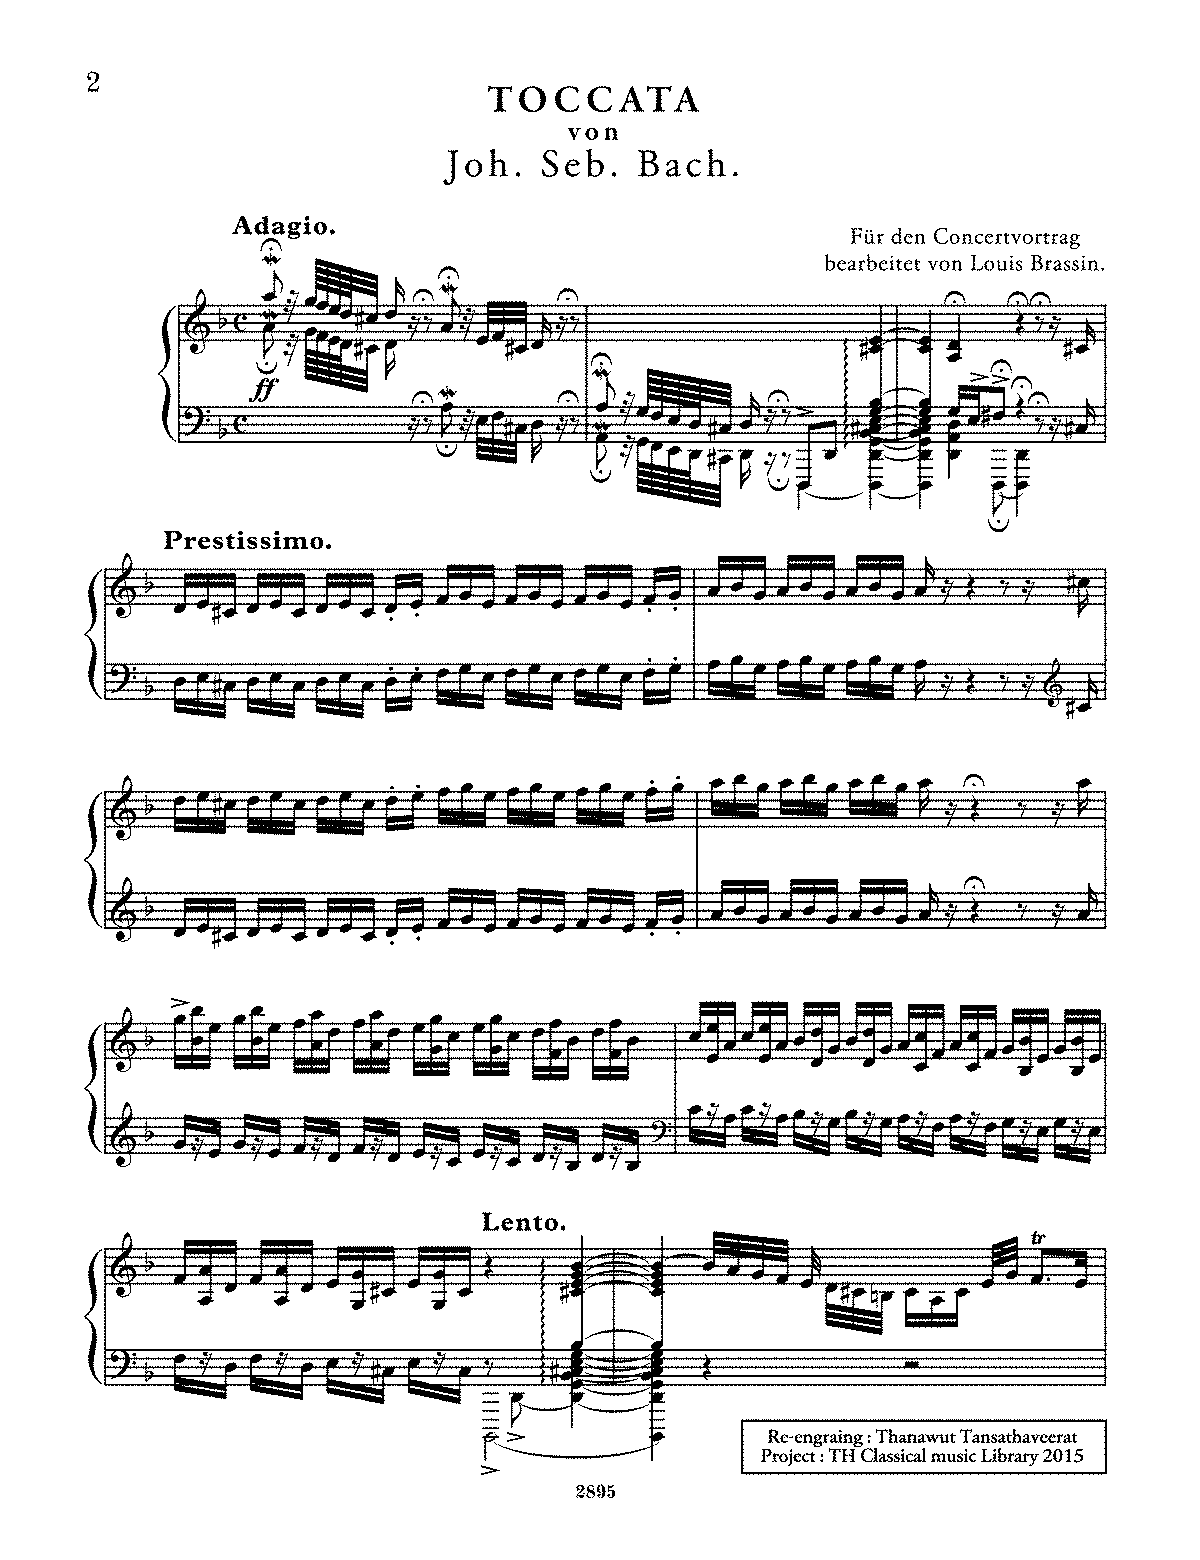 PMLP153090-L.BRASSIN (Transcription of J.S. Bach's Toccata and Fugue in D minor, BWV 565).pdf